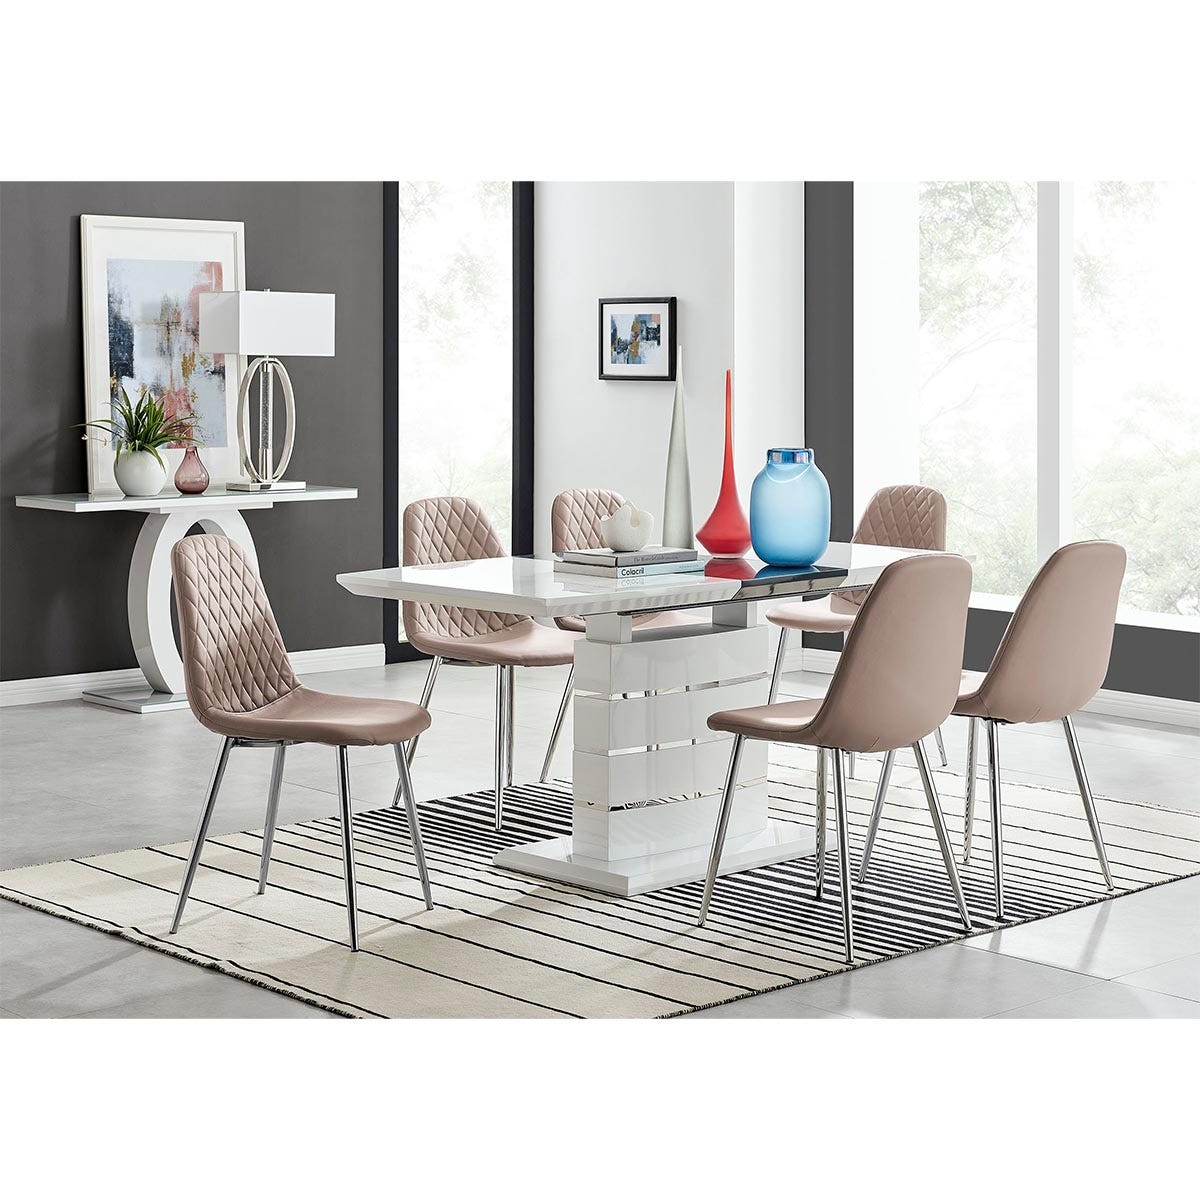 Furniture Box Renato 120cm High Gloss Extending Dining Table and 6 Cappuccino Corona Silver Leg Chairs